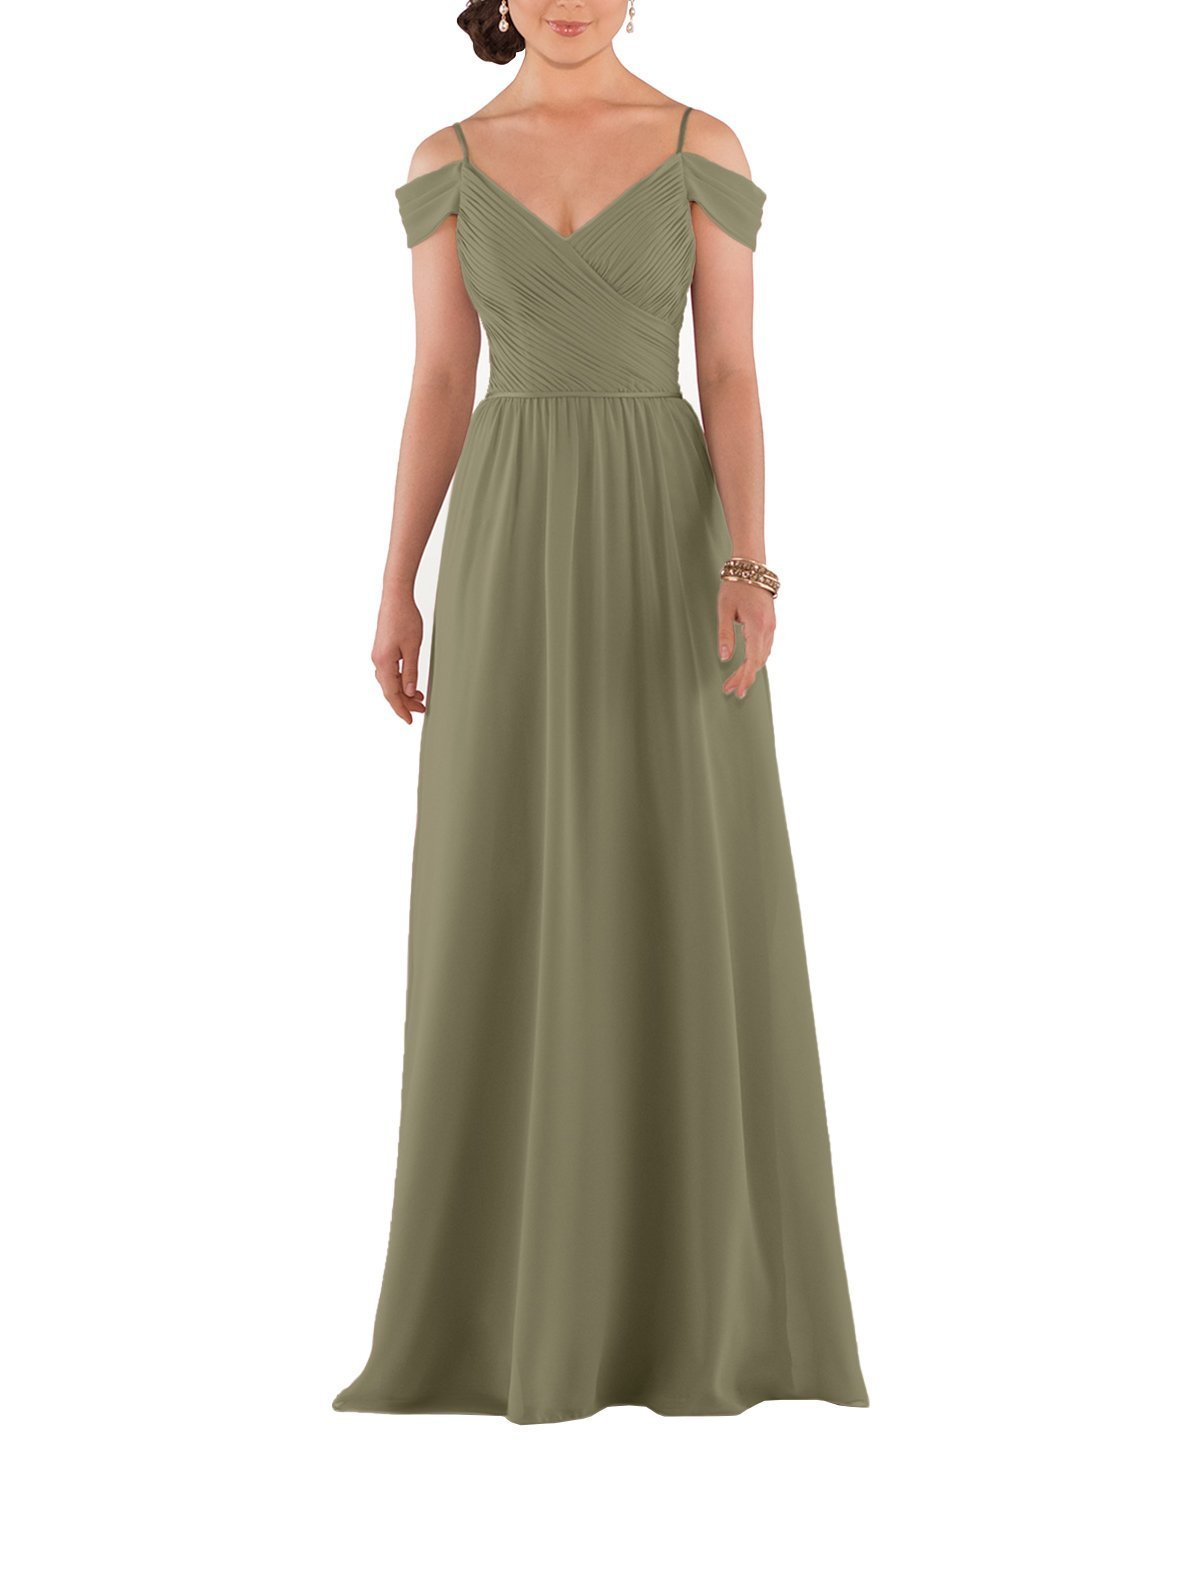 Sorella Vita Style 8922 in Evergreen